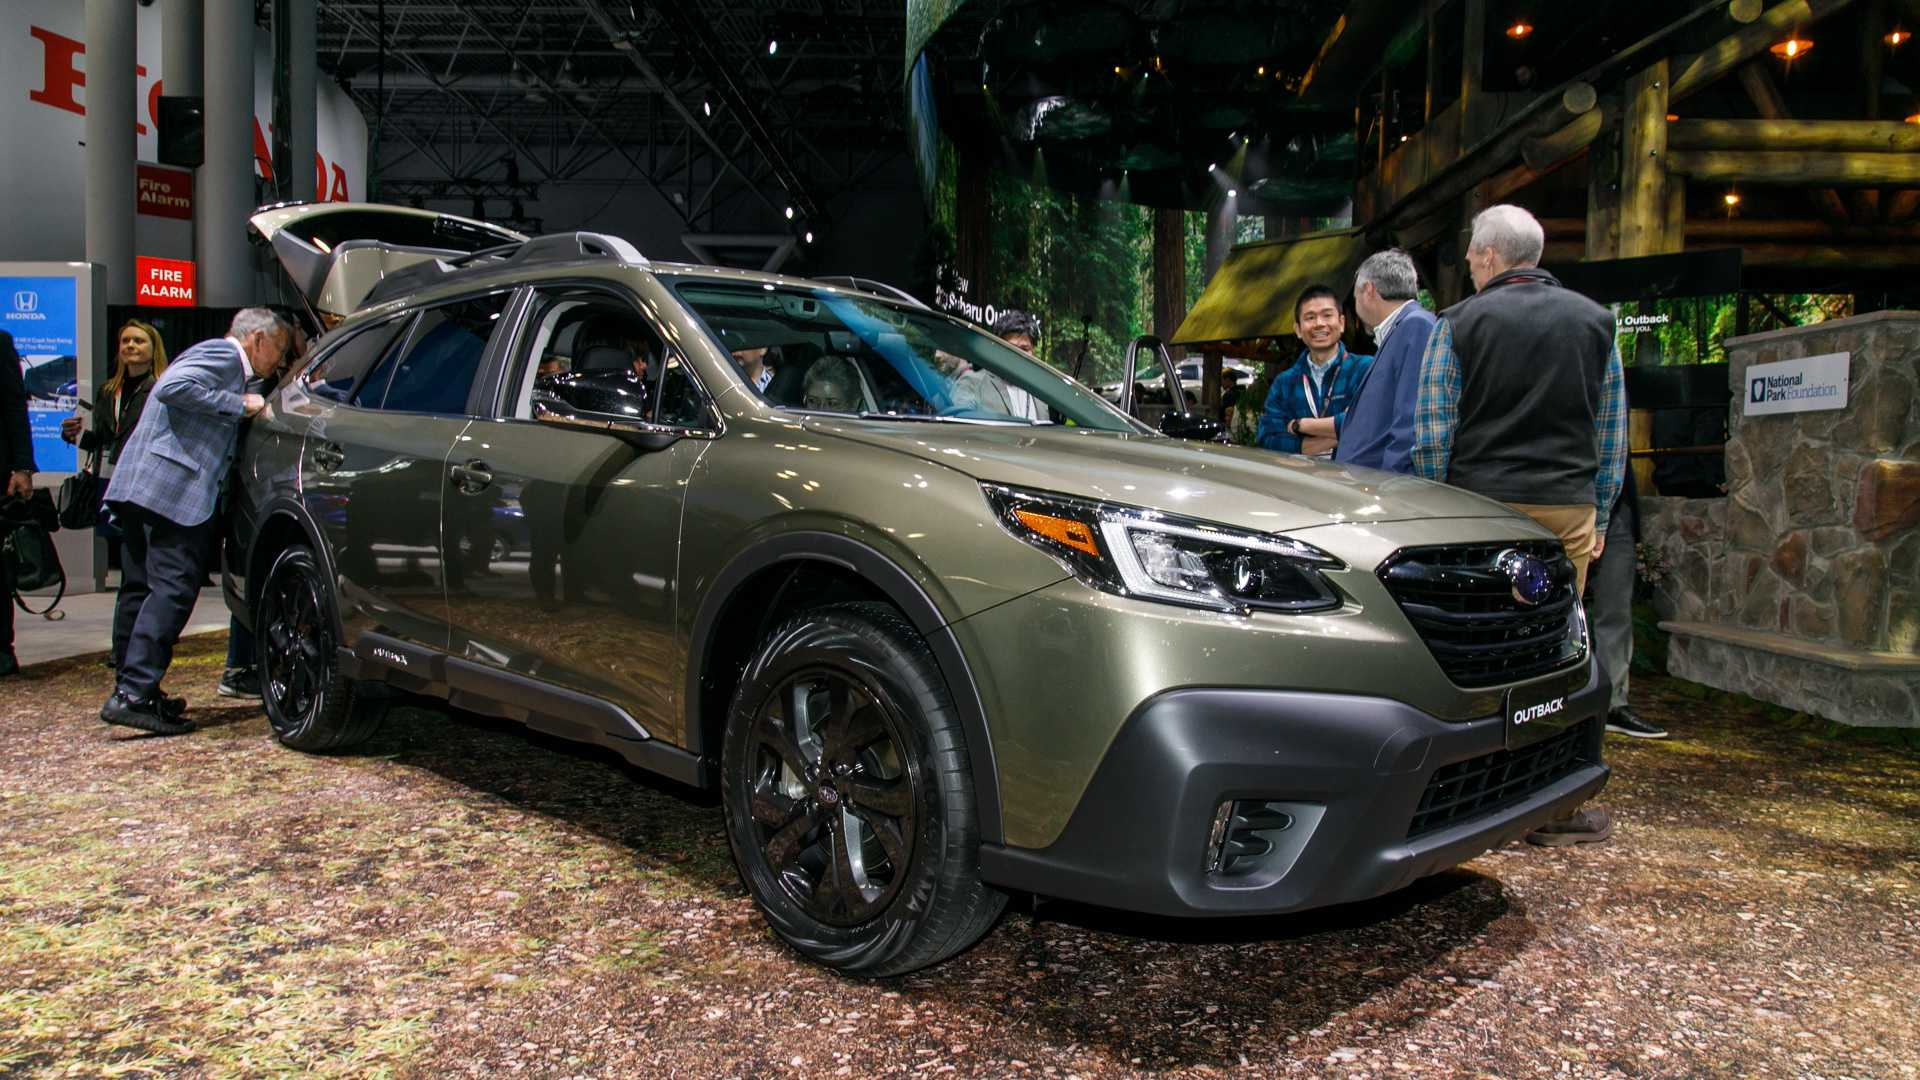 62 All New When Will 2020 Subaru Outback Be Available Configurations for When Will 2020 Subaru Outback Be Available